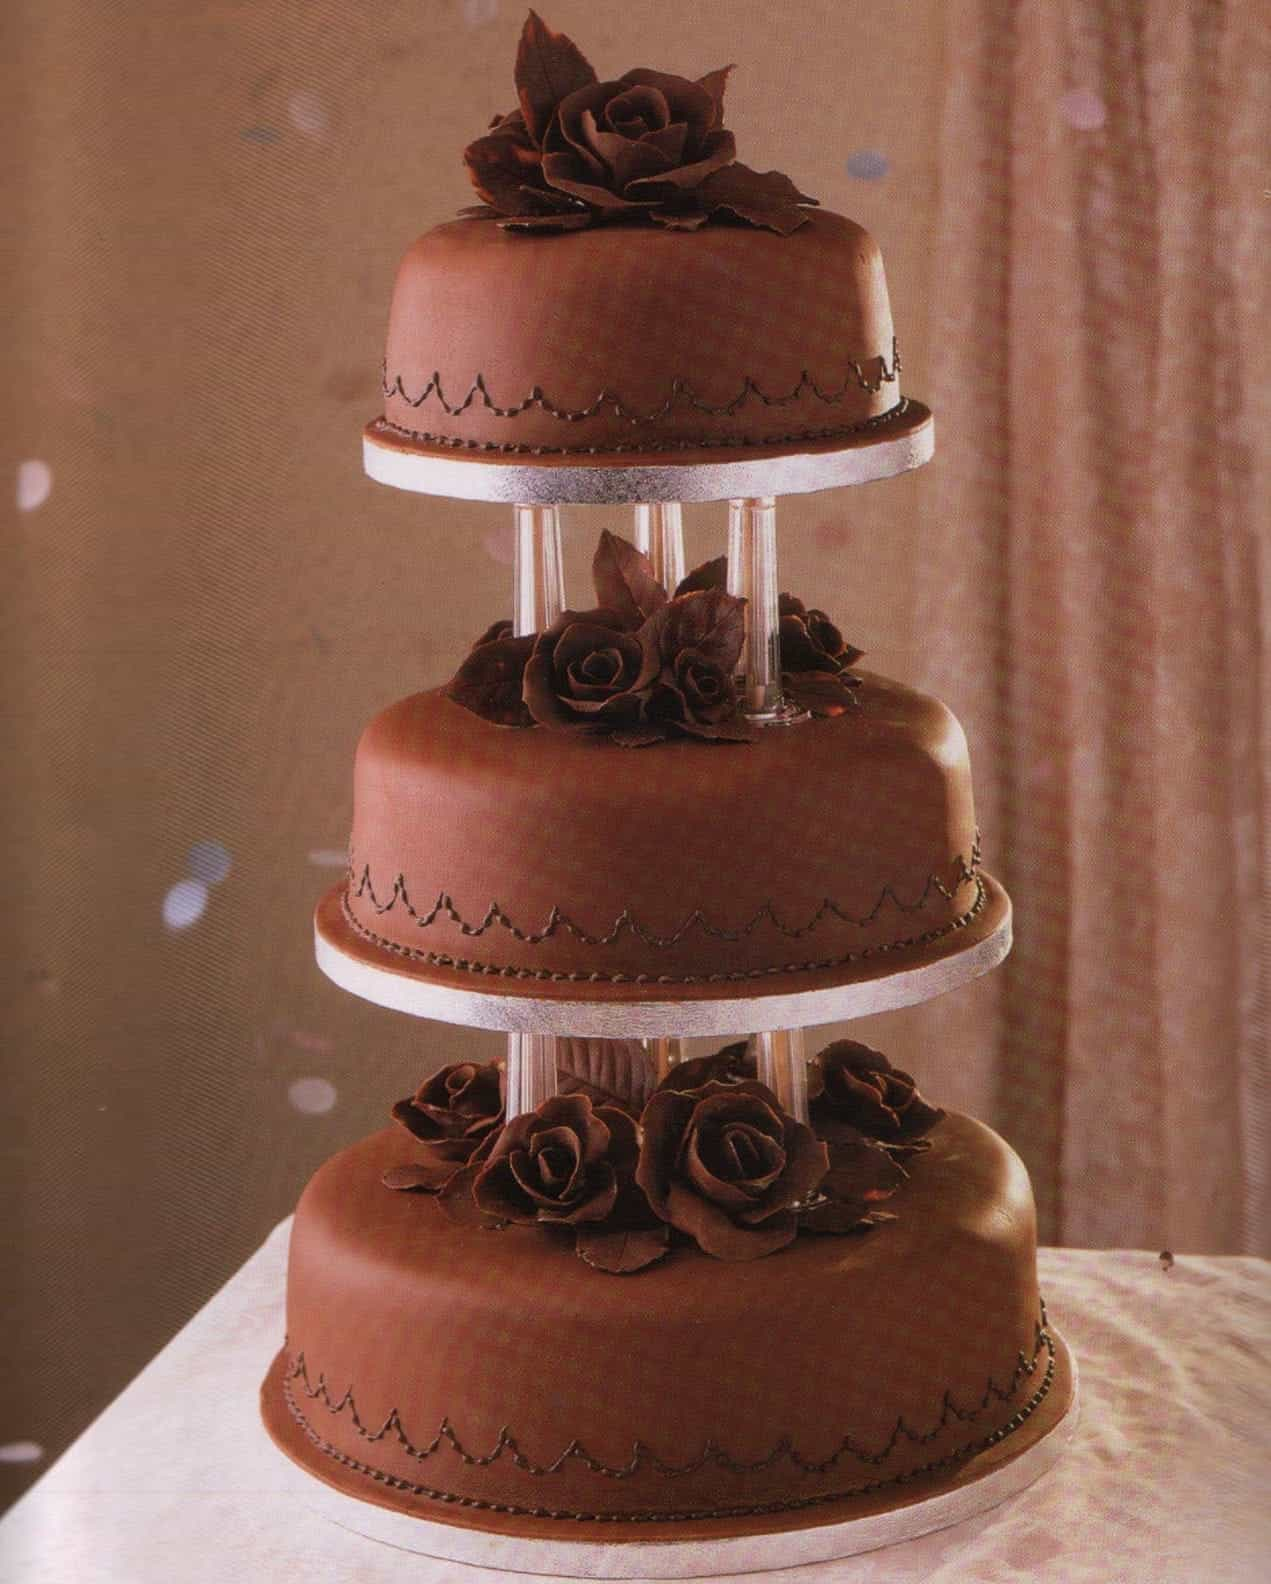 Three Tiers Long Chocolate Wedding Cake (Image 21 of 30)